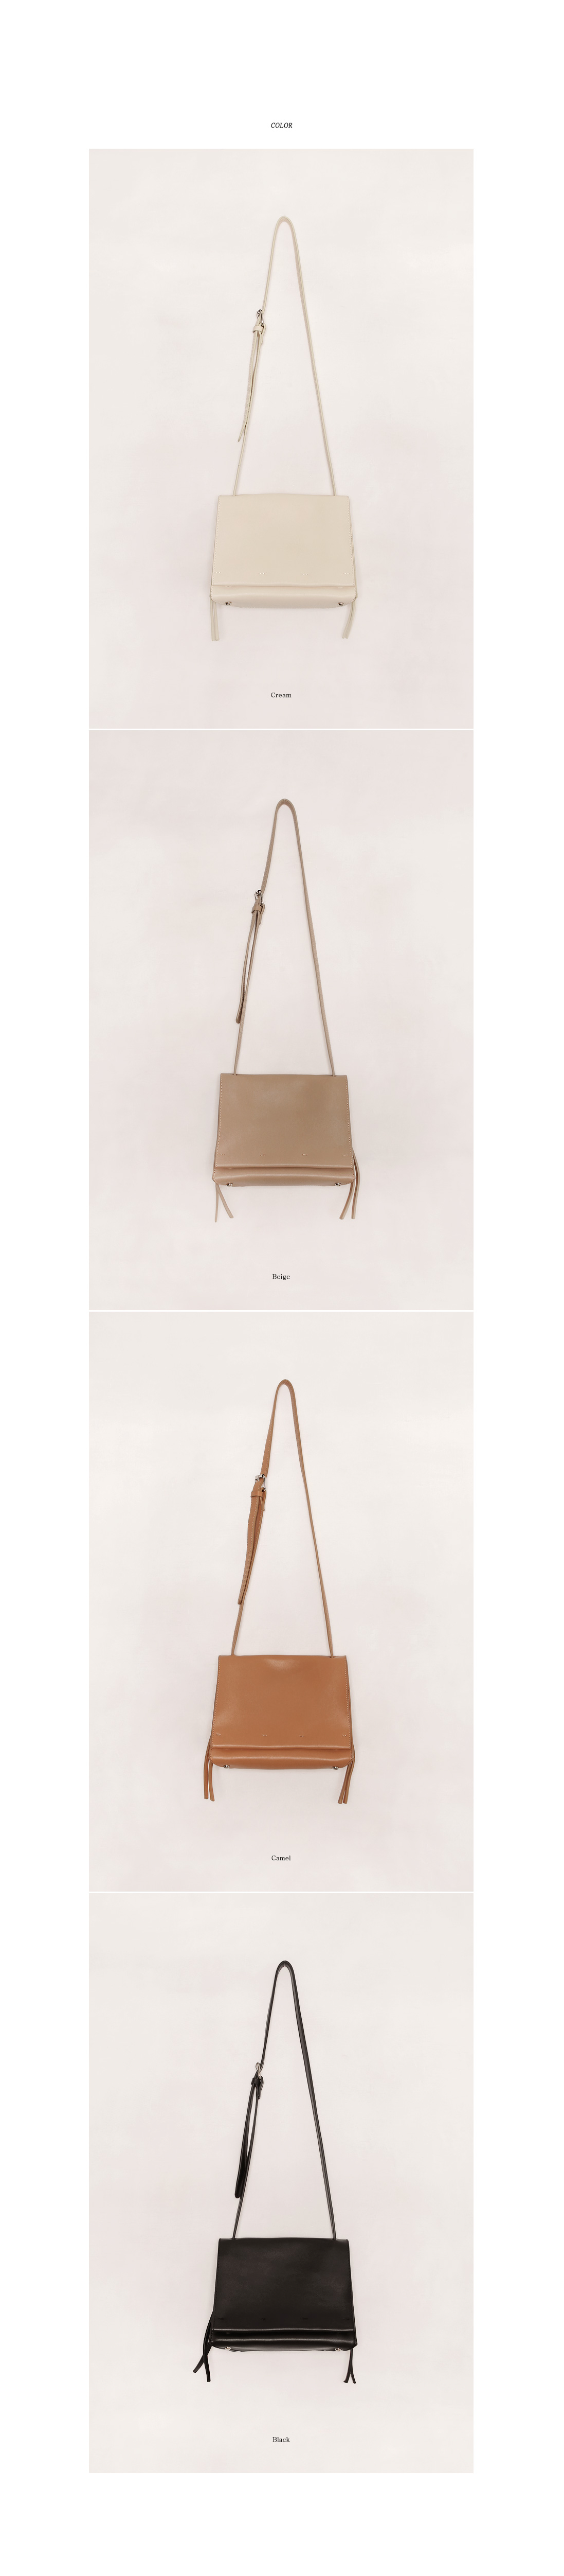 MOORE SQUARE LEATHER BAG